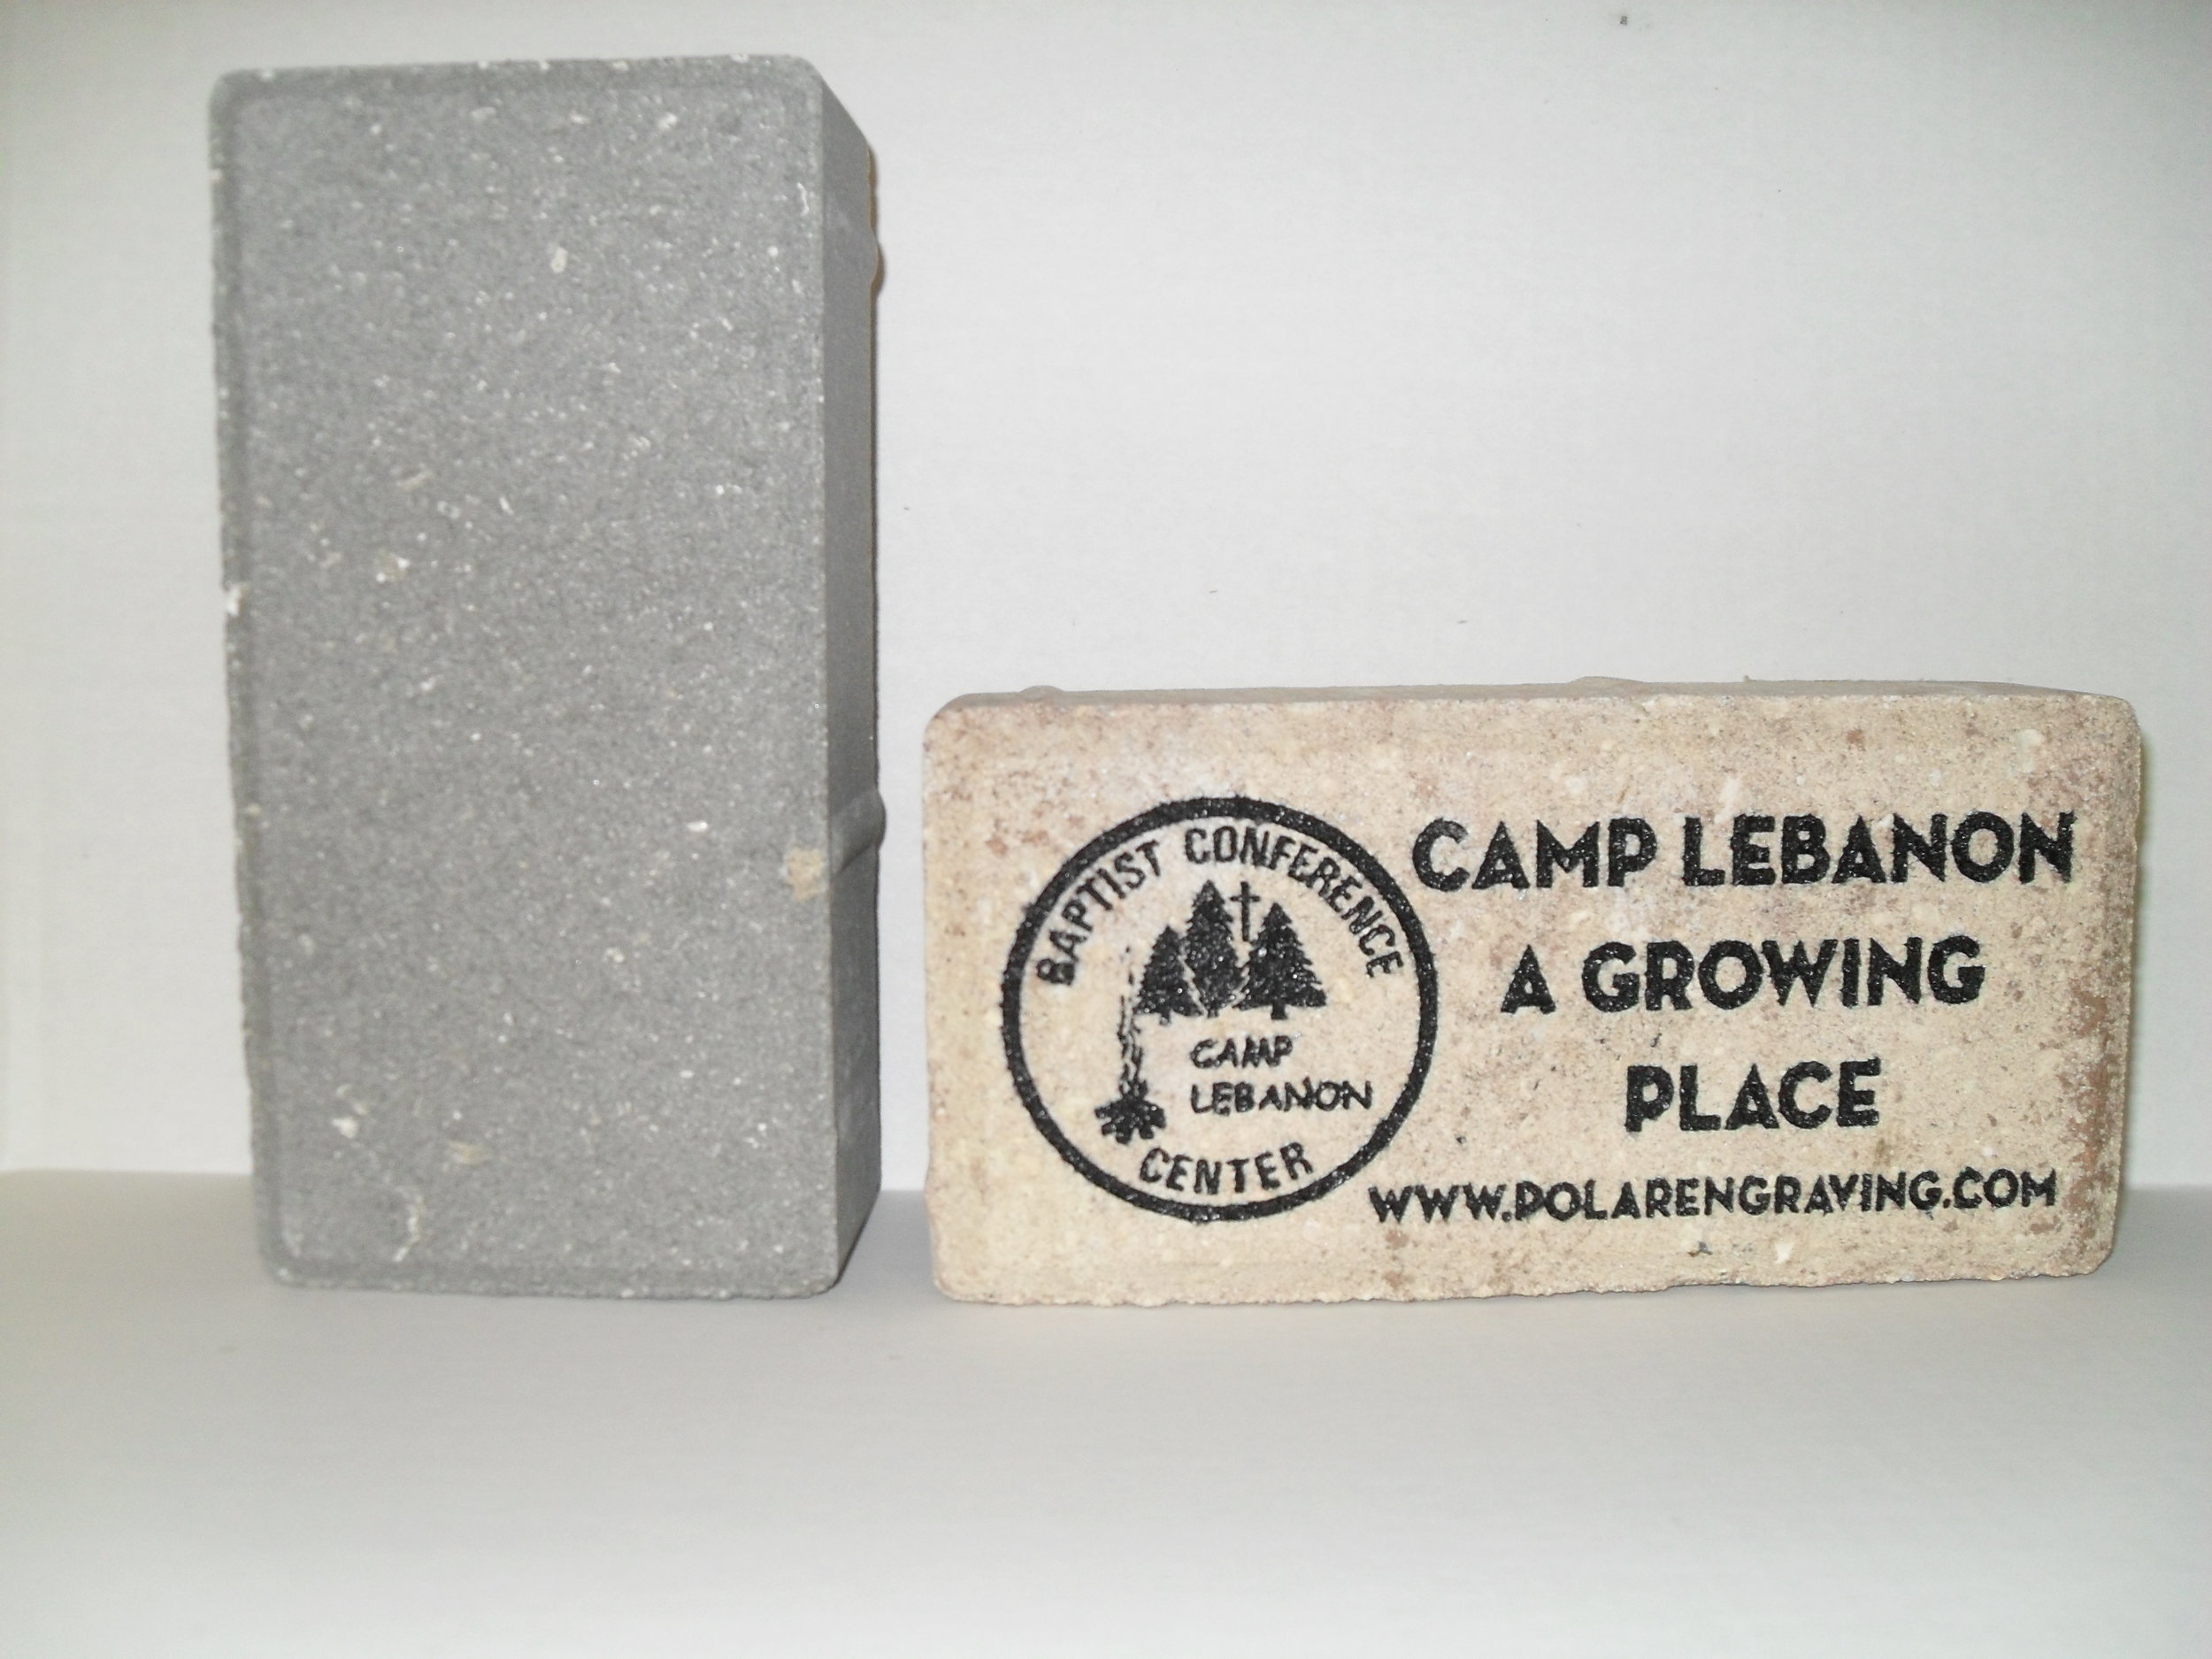 memorial bricks for Camp Lebanon